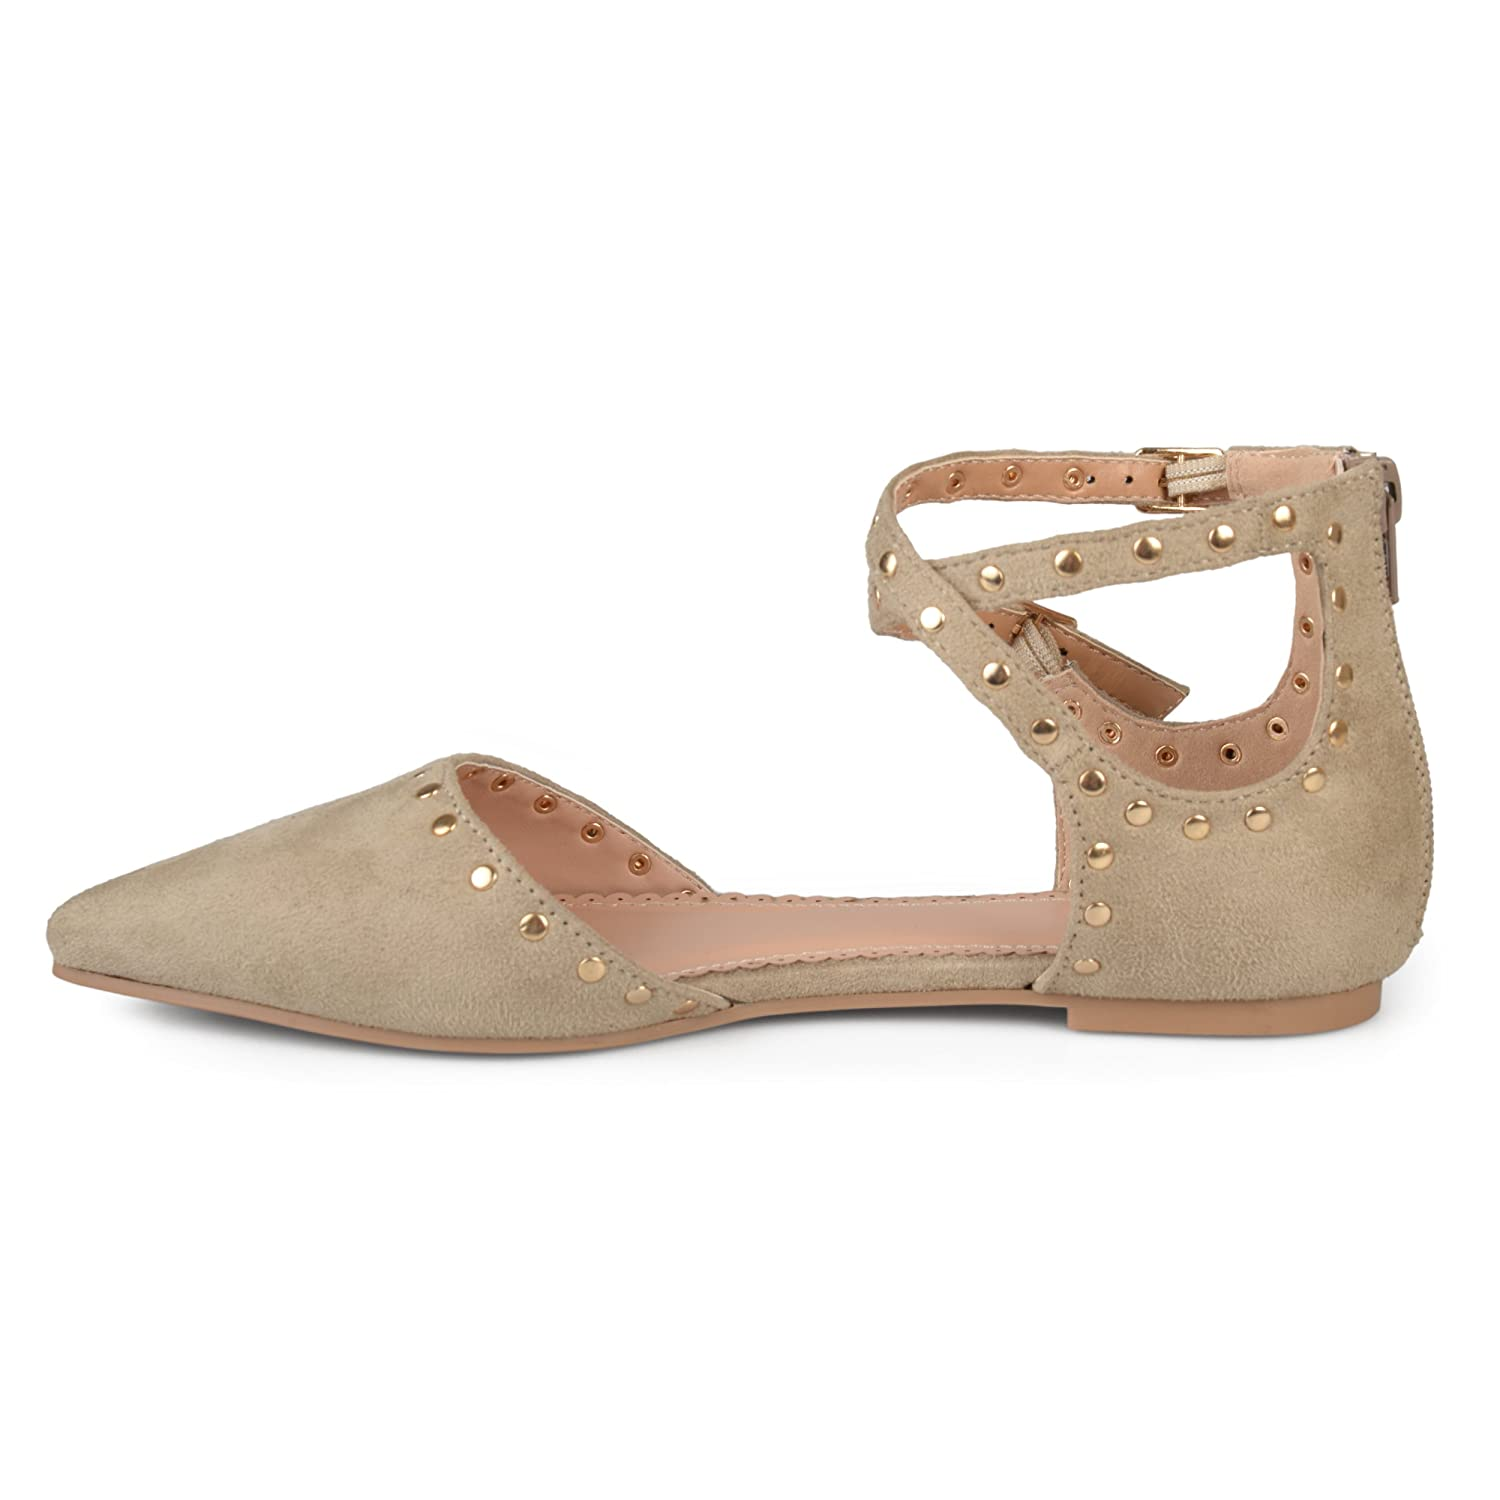 Brinley Flats Co Womens Double Ankle Strap Faux Suede Studded Flats Brinley B073VSFK9S 8.5 B(M) US|Taupe e65238